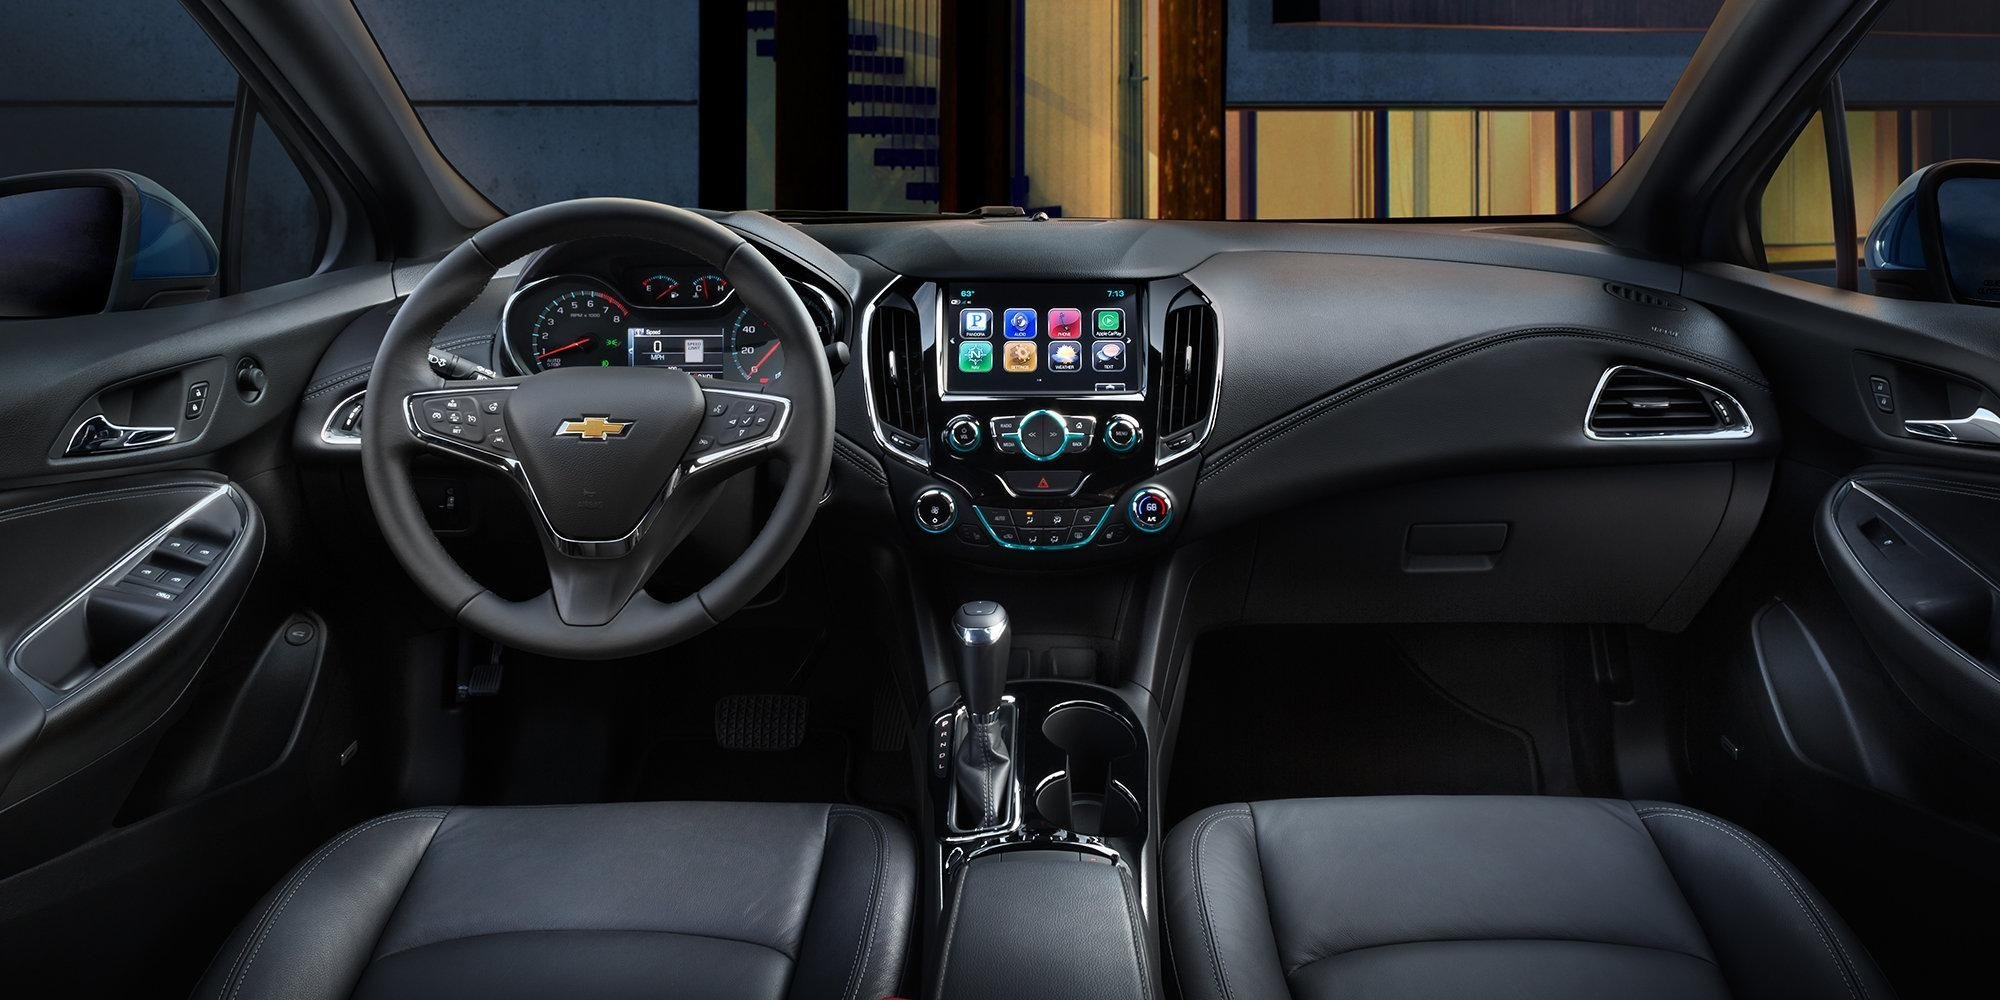 Chevrolet Cruze Lease Incentives & Offers - New Prague MN